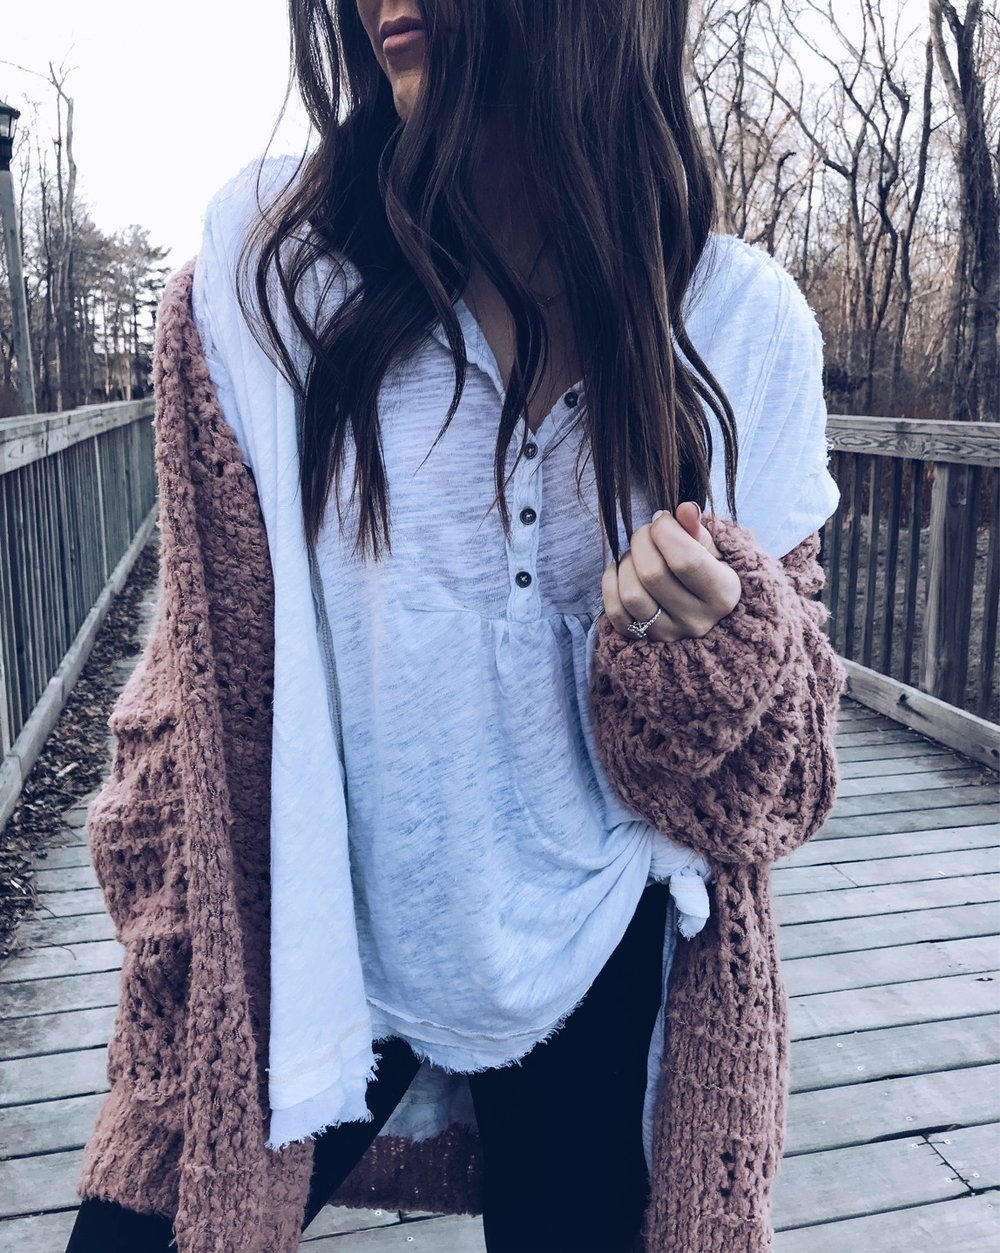 Must Have White Top for Spring | Pine Barren Beauty | spring outfit idea, spring transition outfit idea, free people cardigan, free people tee, knotted tee, hair goals